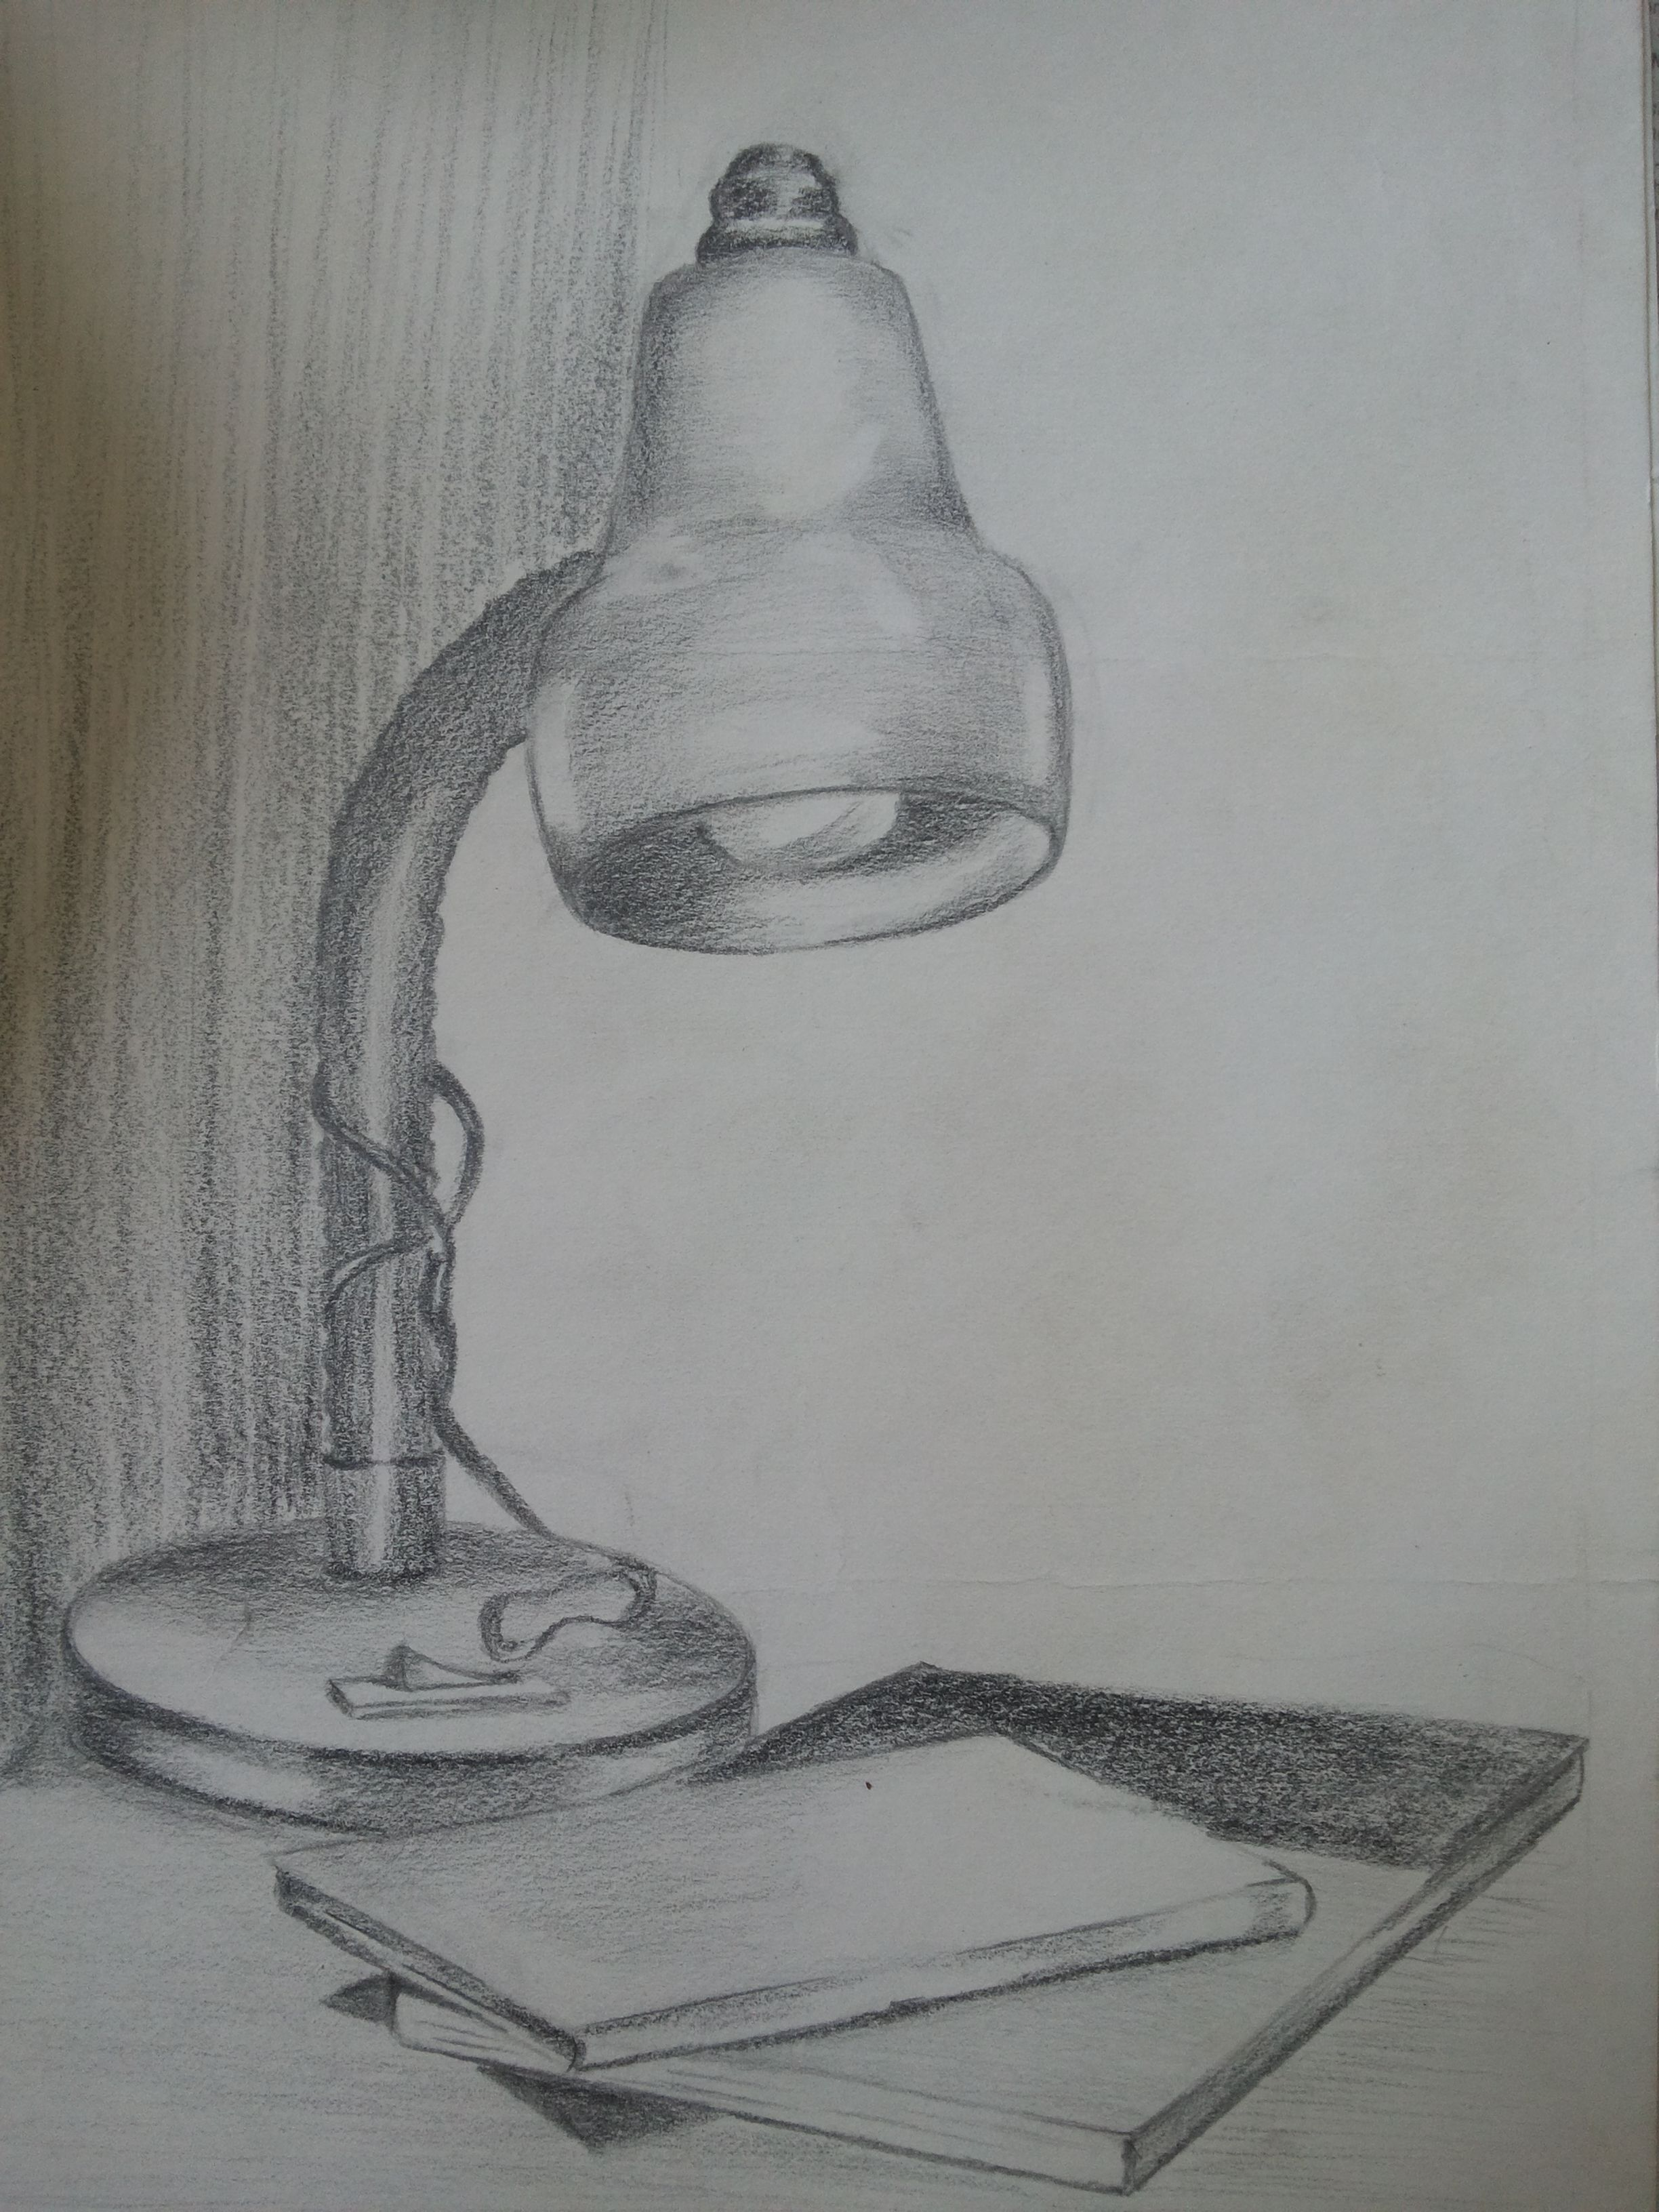 Live sketch charcoal shading my sketch in 2019 pencil drawings